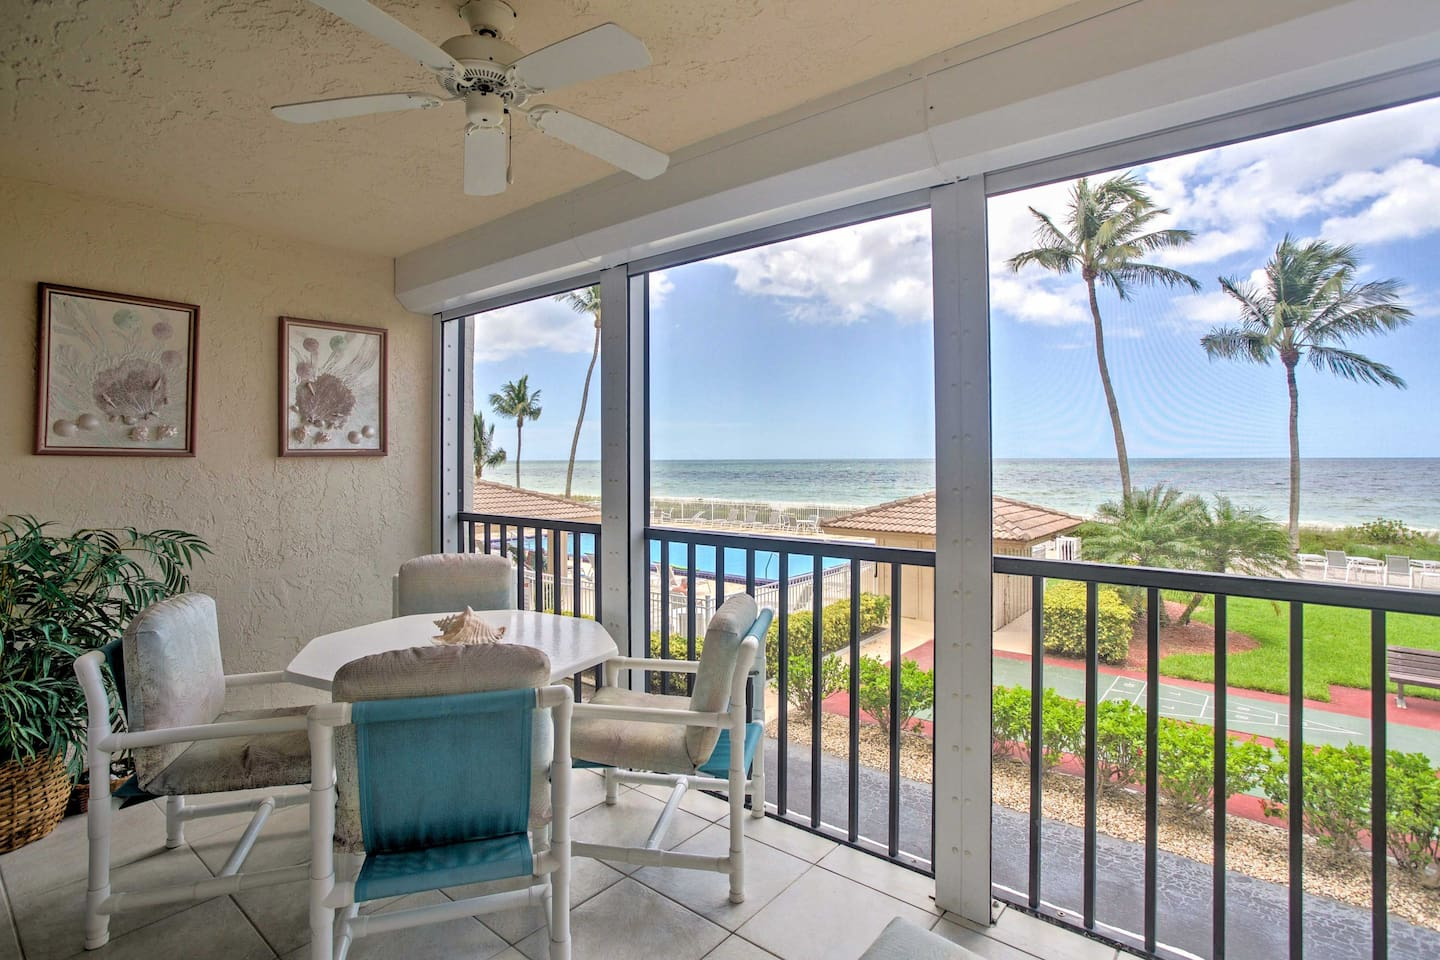 Look forward to a refreshing beach getaway at this oceanfront condo.